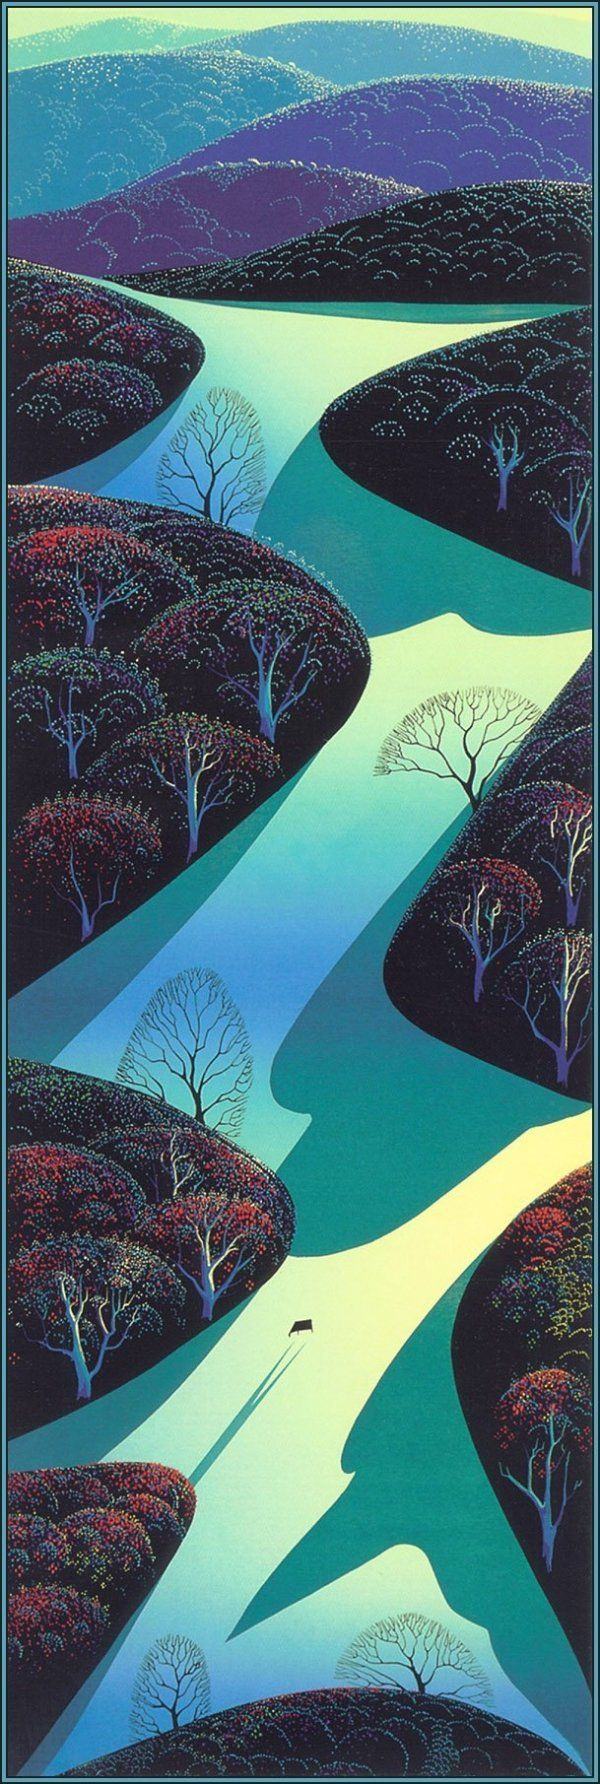 Eyvind Earle (April 26, 1916 – July 20, 2000) was an American artist, author and illustrator, noted for his contribution to the background illustration and styling of Disney animated films in the 1950s. The Metropolitan Museum of Art, New York, Rahr West Art Museum, Phoenix Art Museum and Arizona State University Art Museum have purchased Earle's works for their permanent collections. https://en.wikipedia.org/wiki/Eyvind_Earle#Illustration #Disney